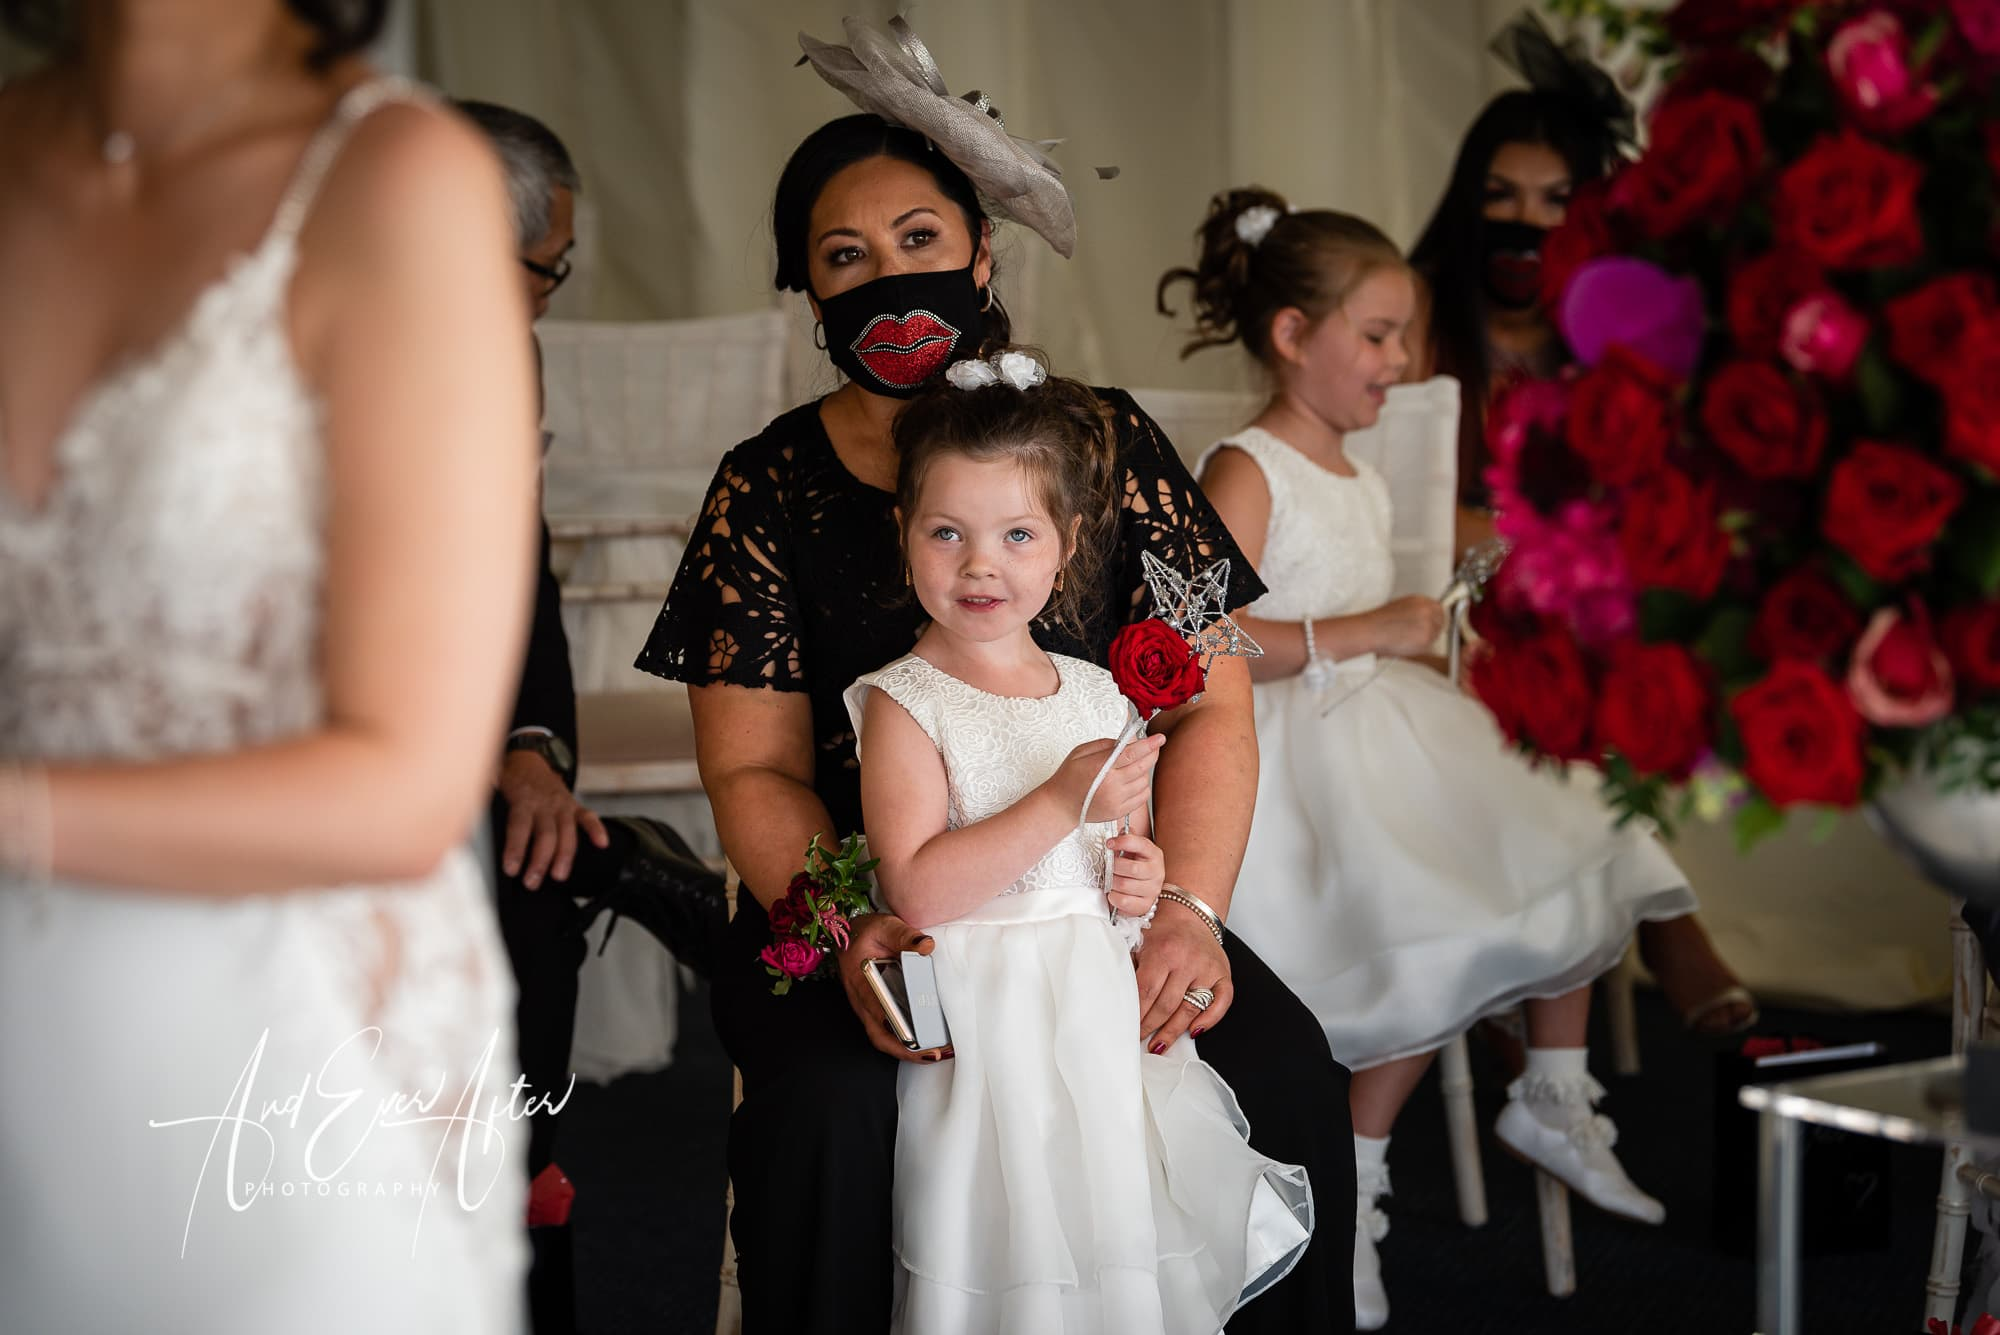 mother of the bride, wedding guests, flower girl